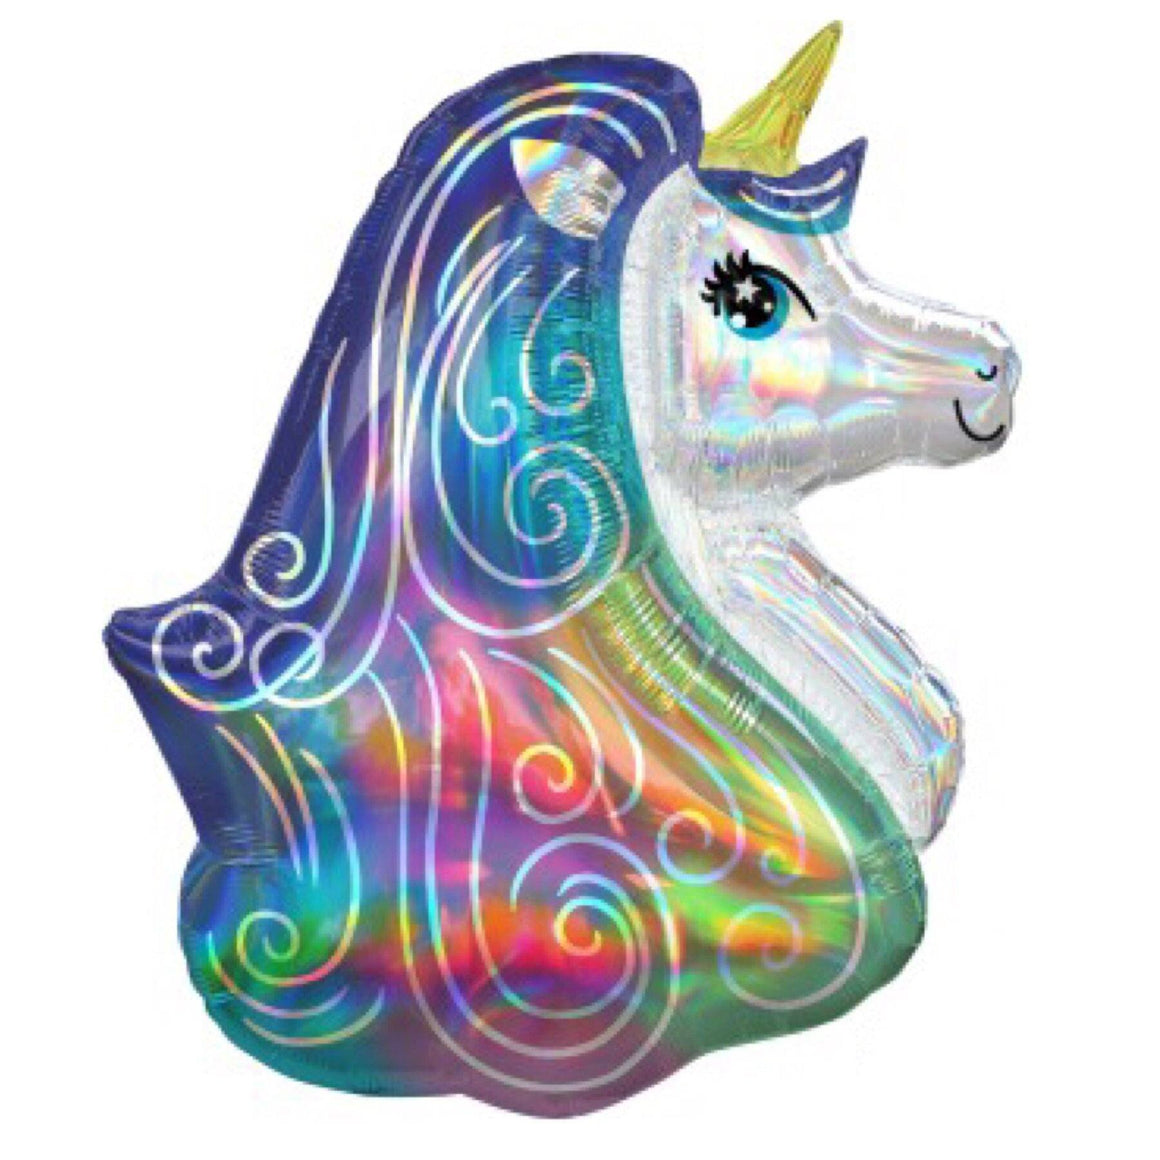 BALLOONS - UNICORN 2a HEAD HOLOGRAPHIC, Balloons, Anagram - Bon + Co. Party Studio